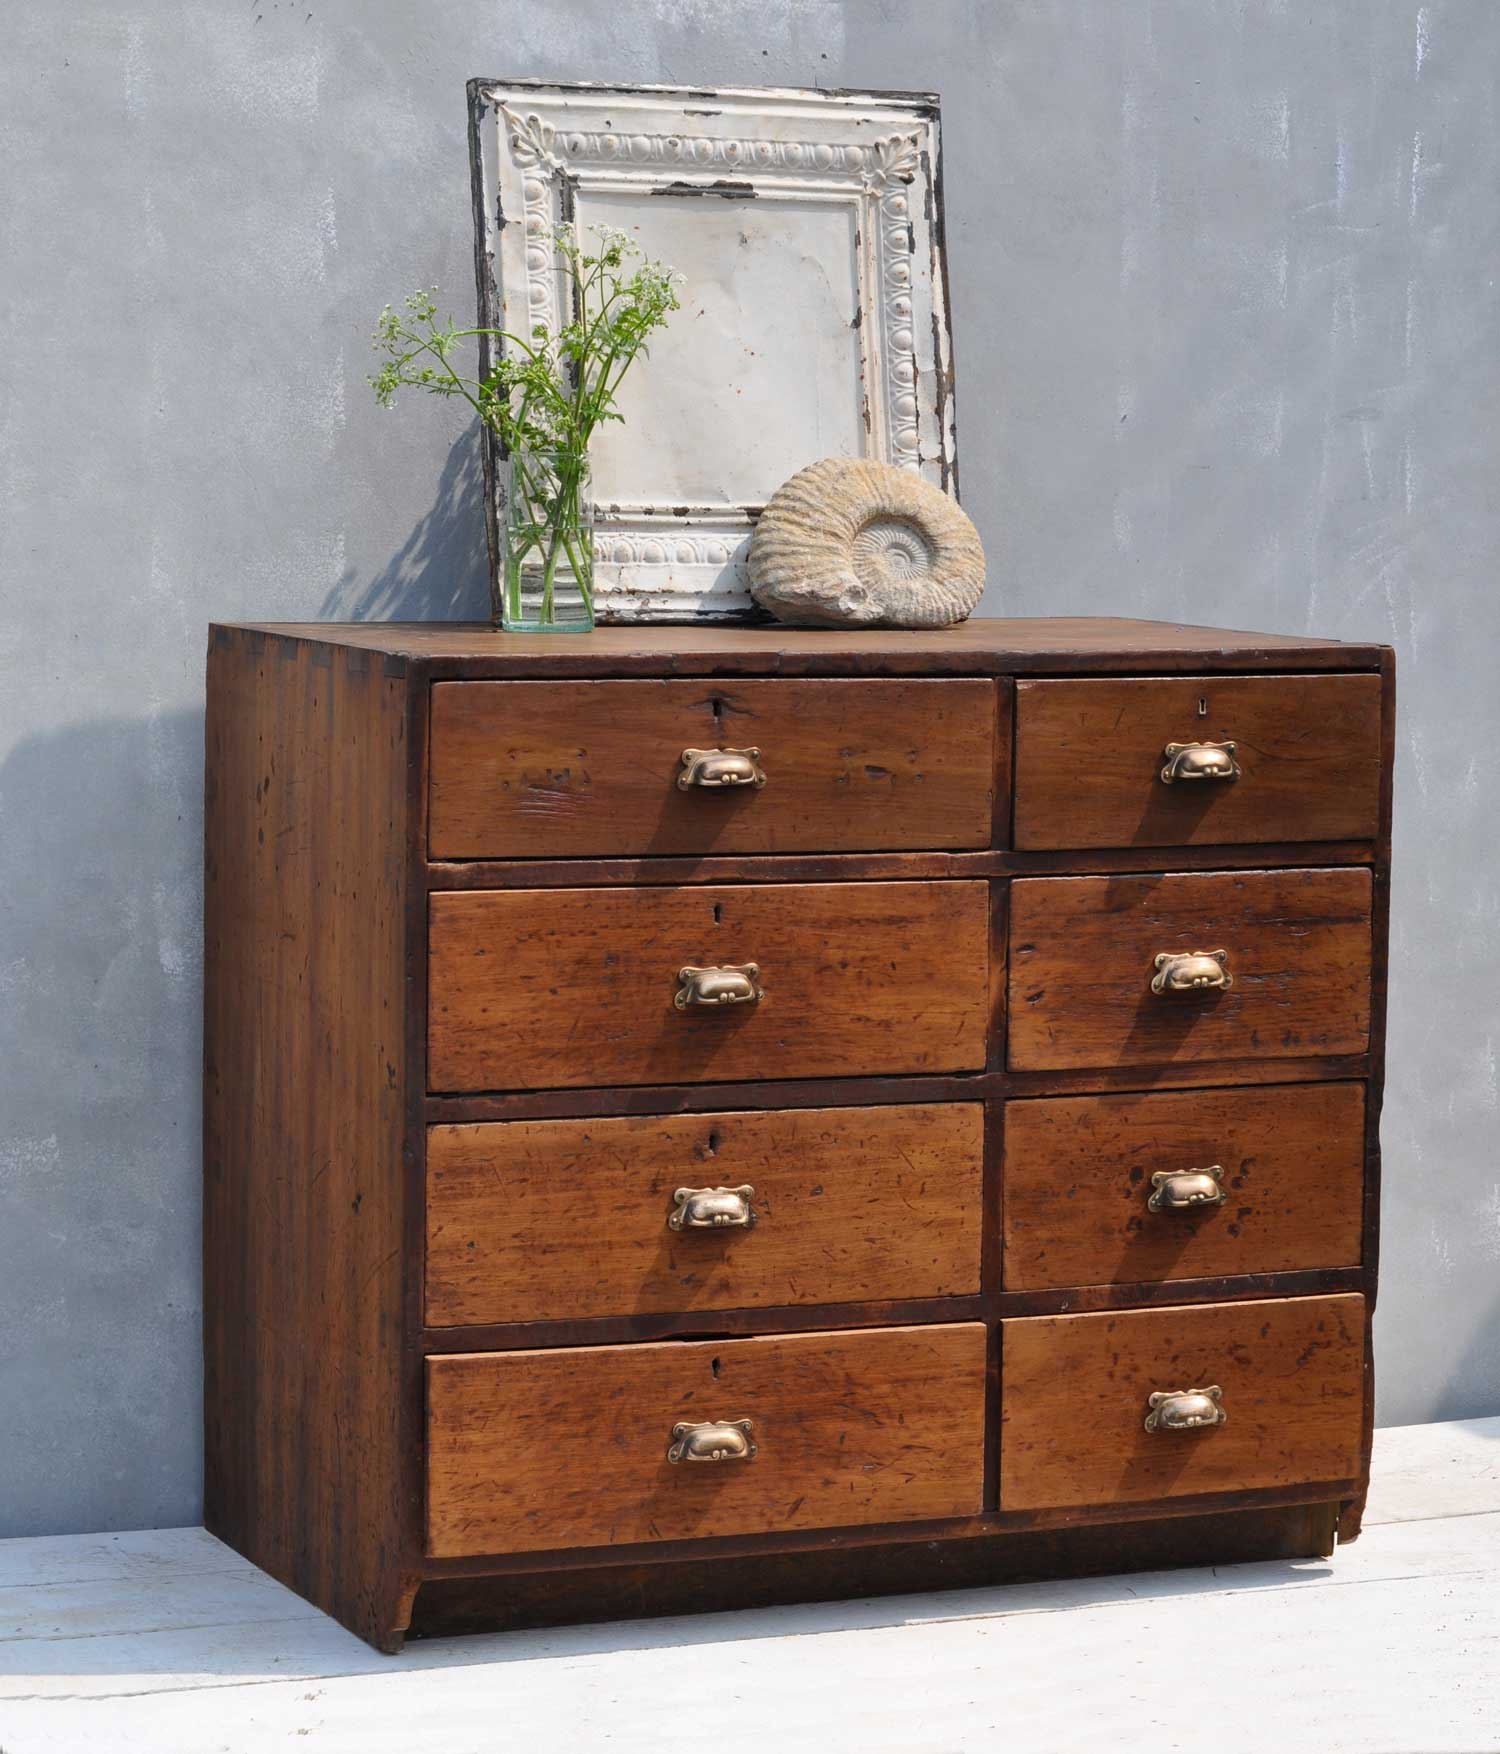 Antique Bank Tellers Chest Of Drawers Home Barn Vintage